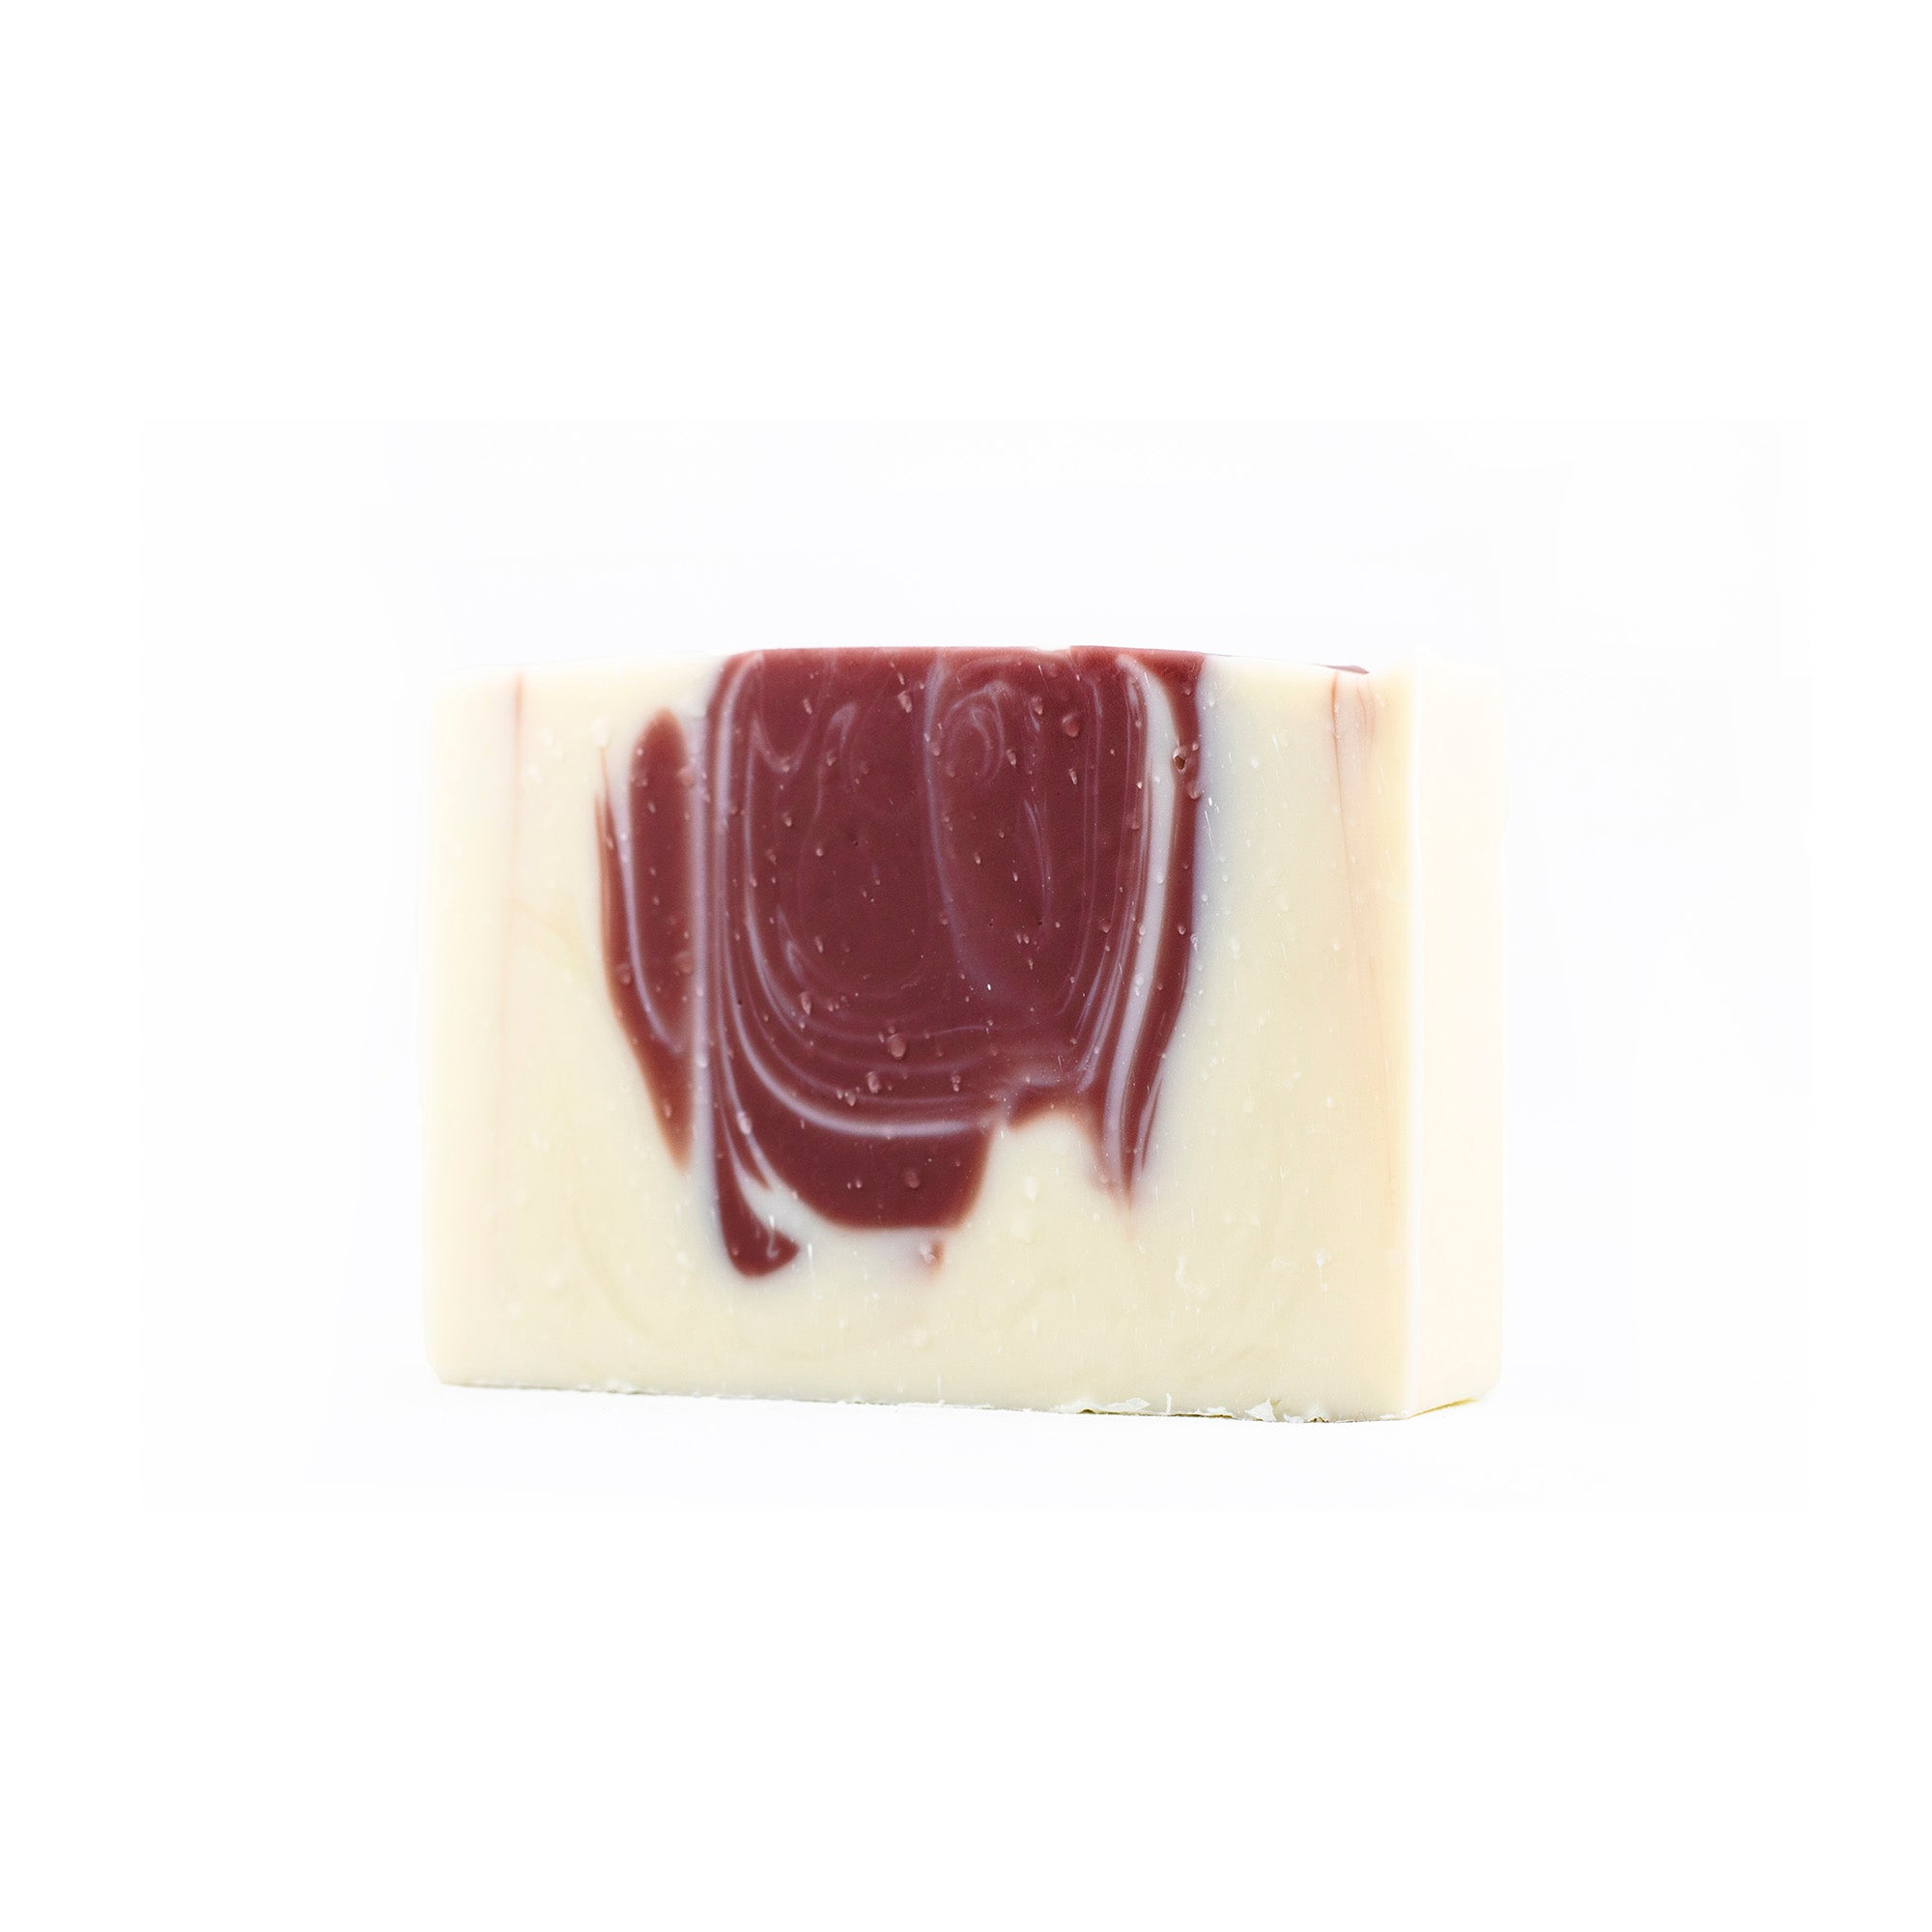 A white bar of soap with a maroon drop swirl in it centre on a white back drop.